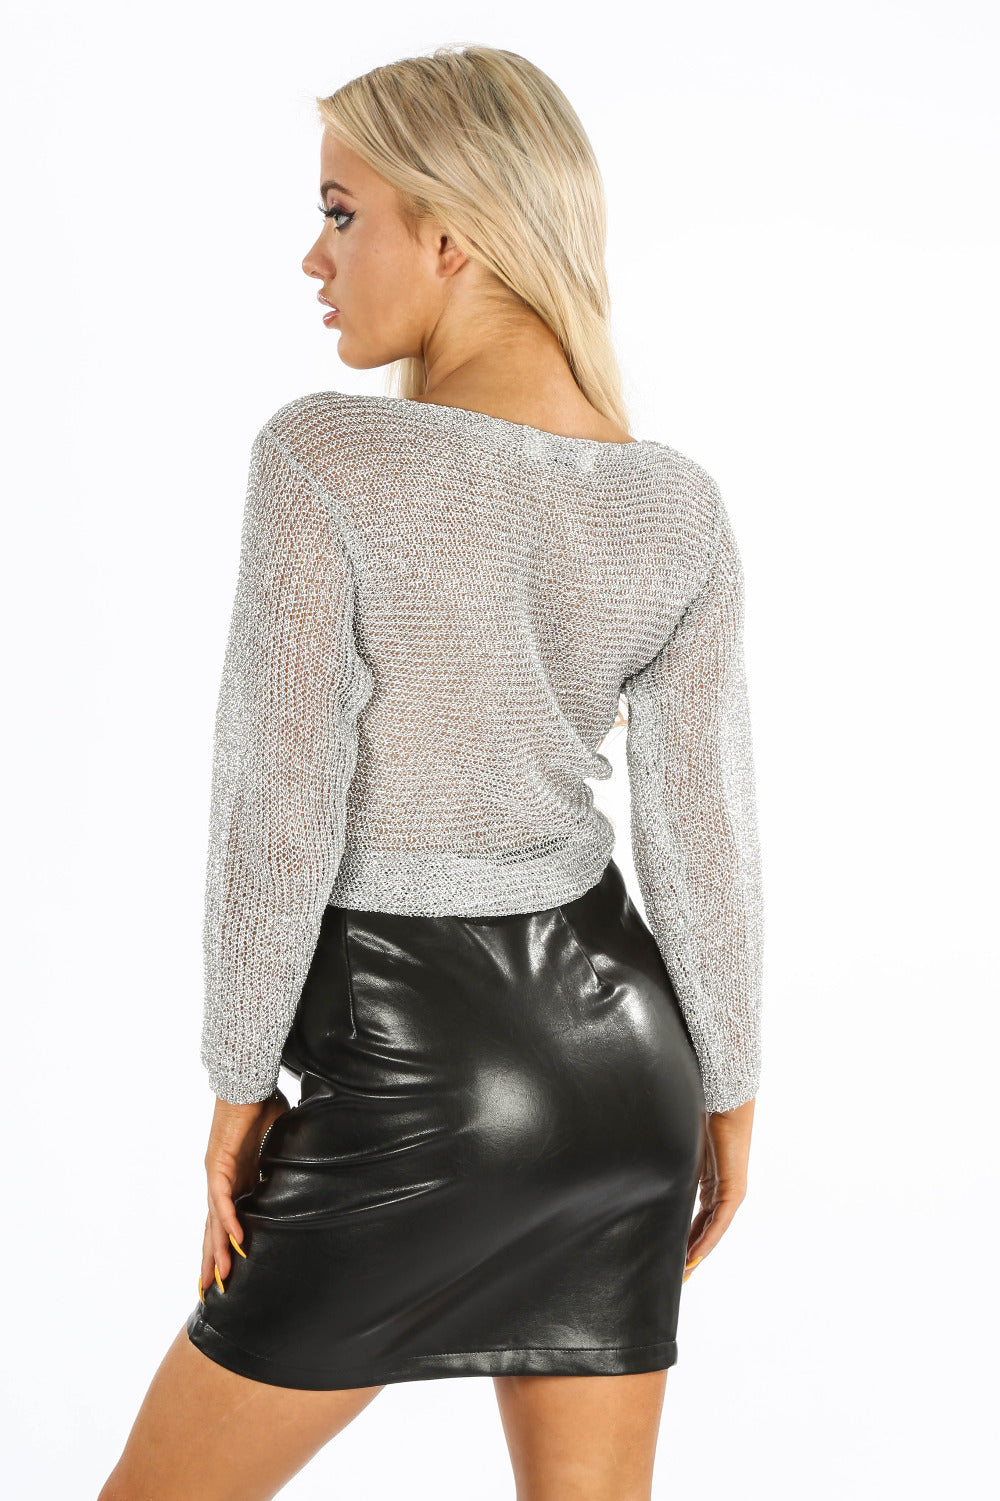 Silver Metallic Knit Cross Over Top